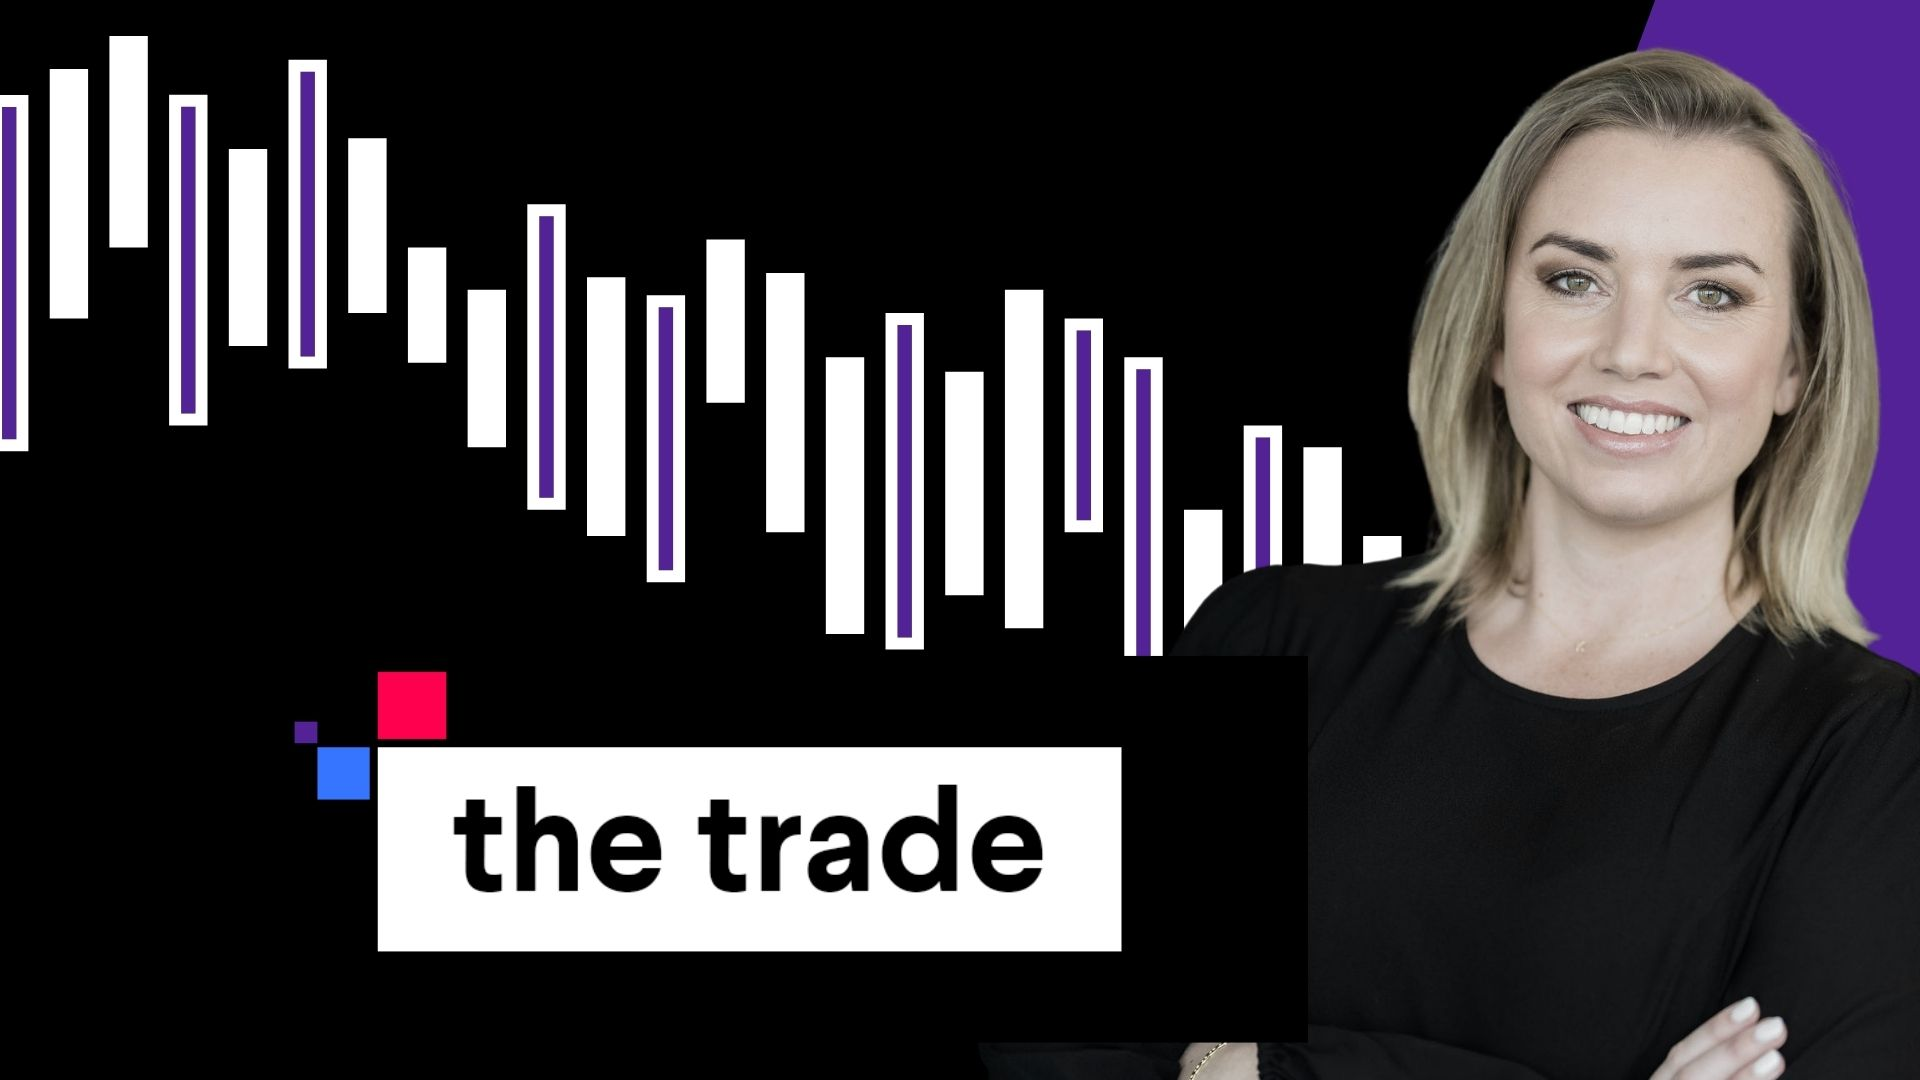 Mandi's 3 steps process to become a better trader | the trade